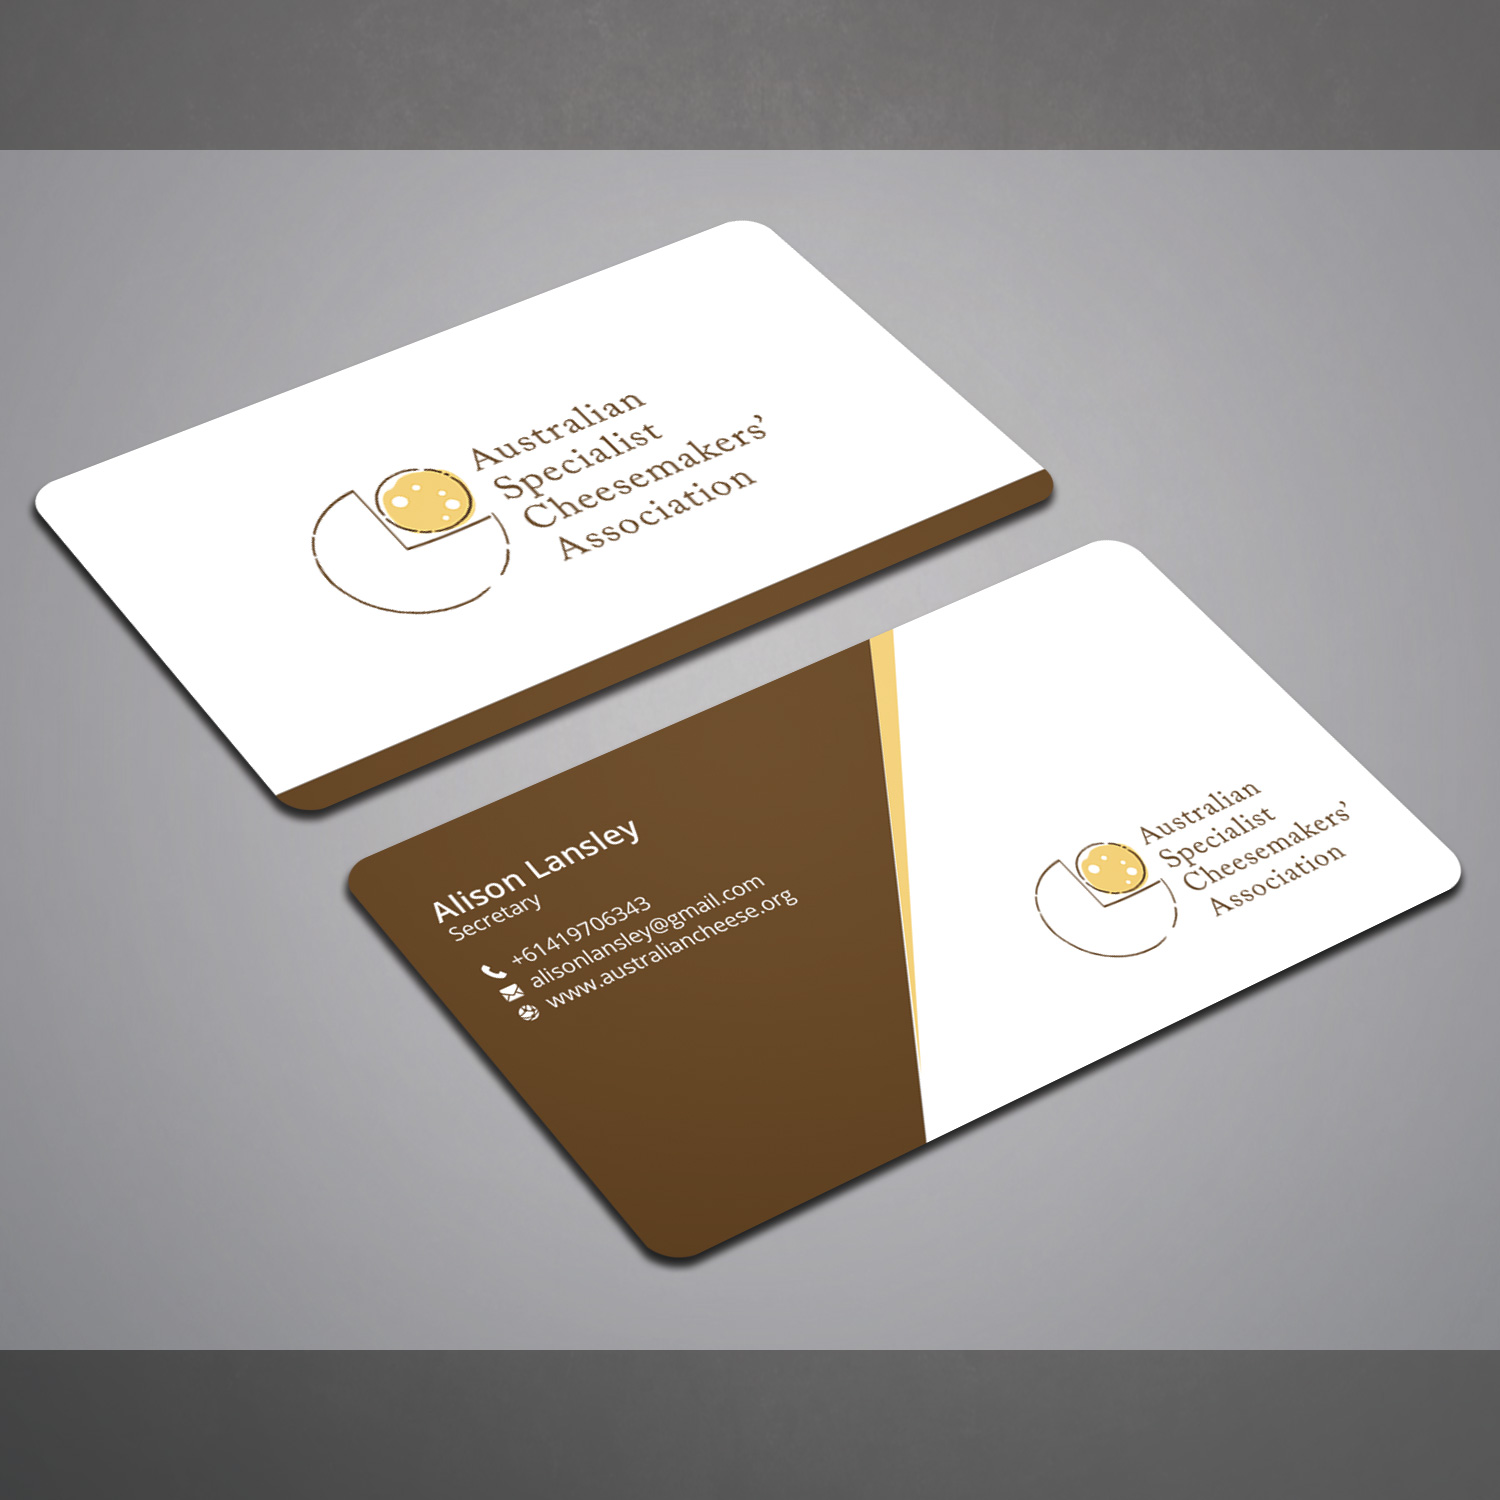 Business Card Design By Right D For Australian Specialist Cheesemakers Association Needs New Cards